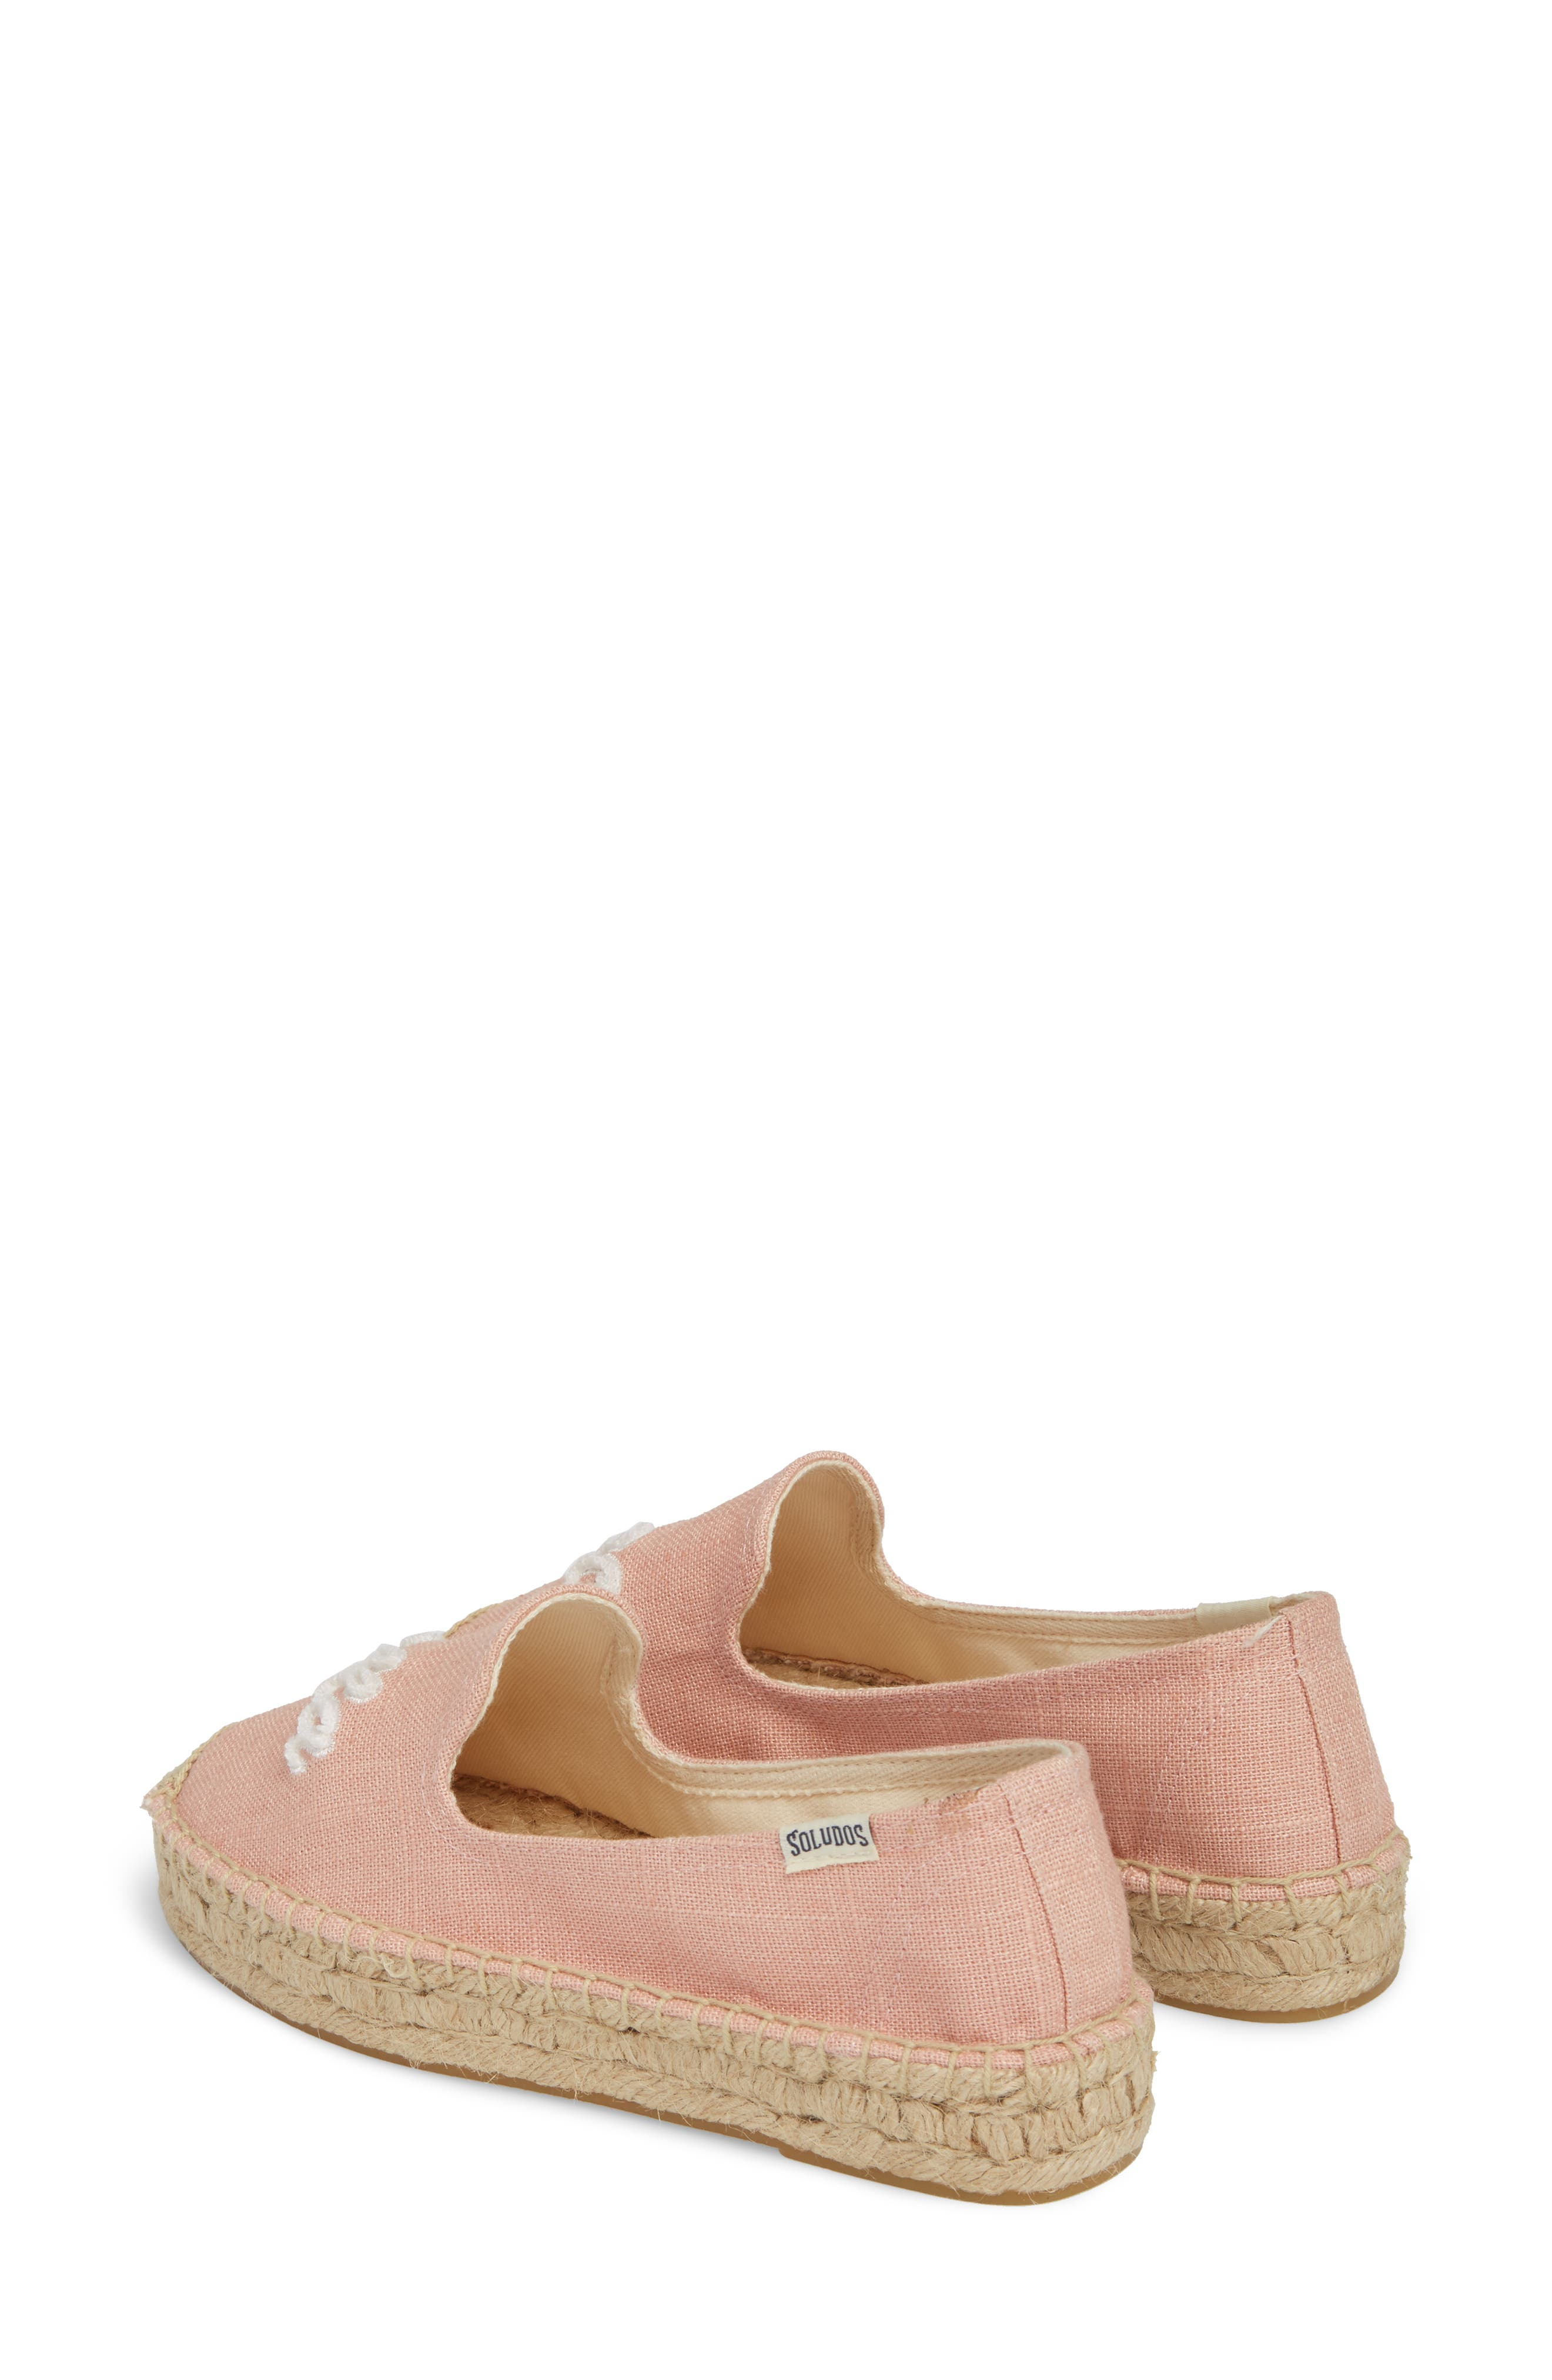 Ciao Bella Espadrille Flat,                             Alternate thumbnail 3, color,                             DUSTY ROSE FABRIC